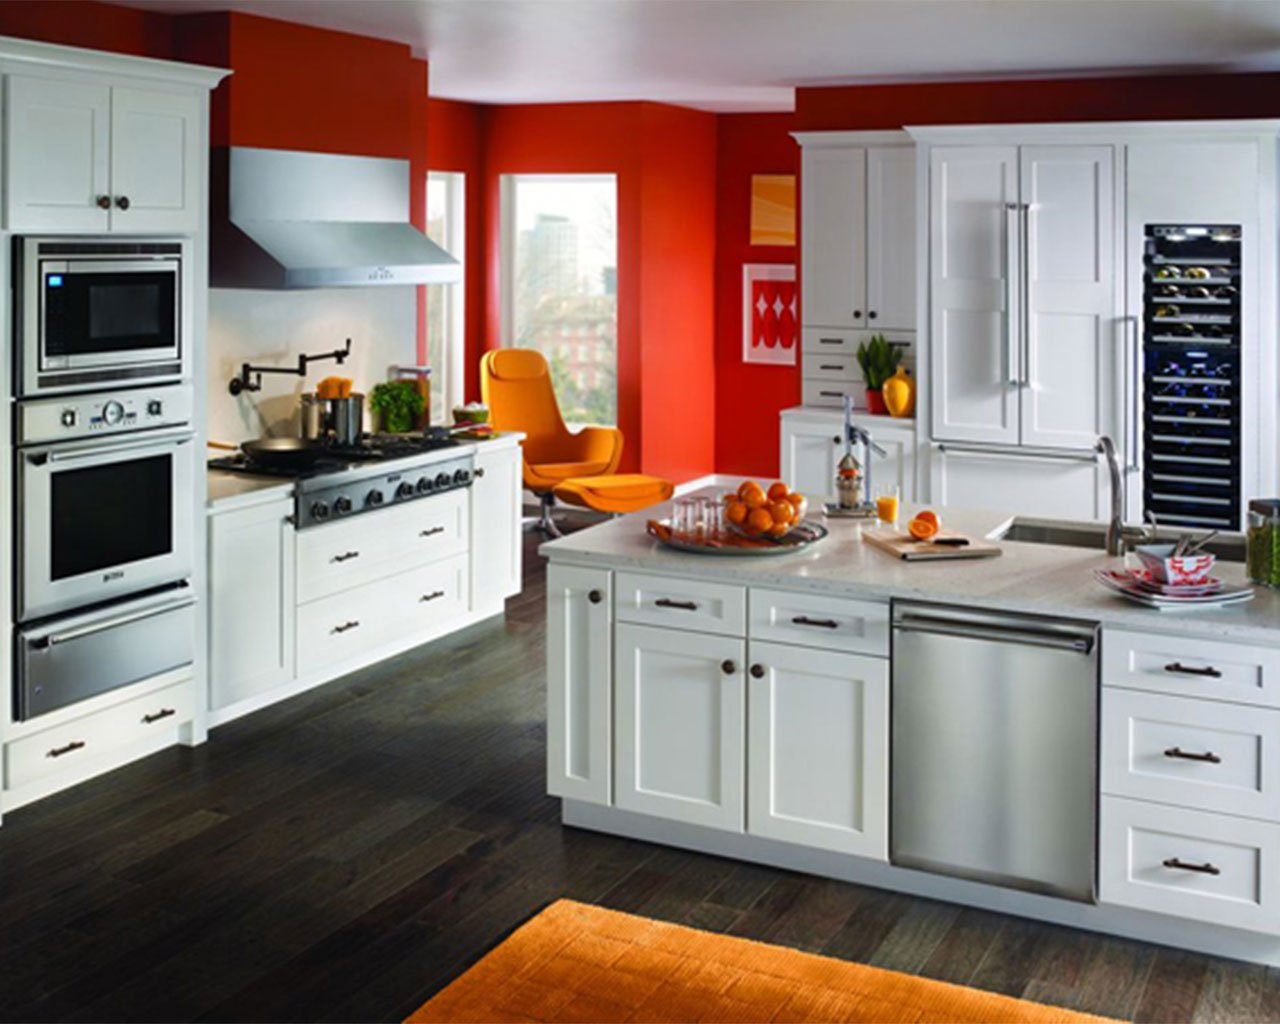 modern red and white colored kitchen design